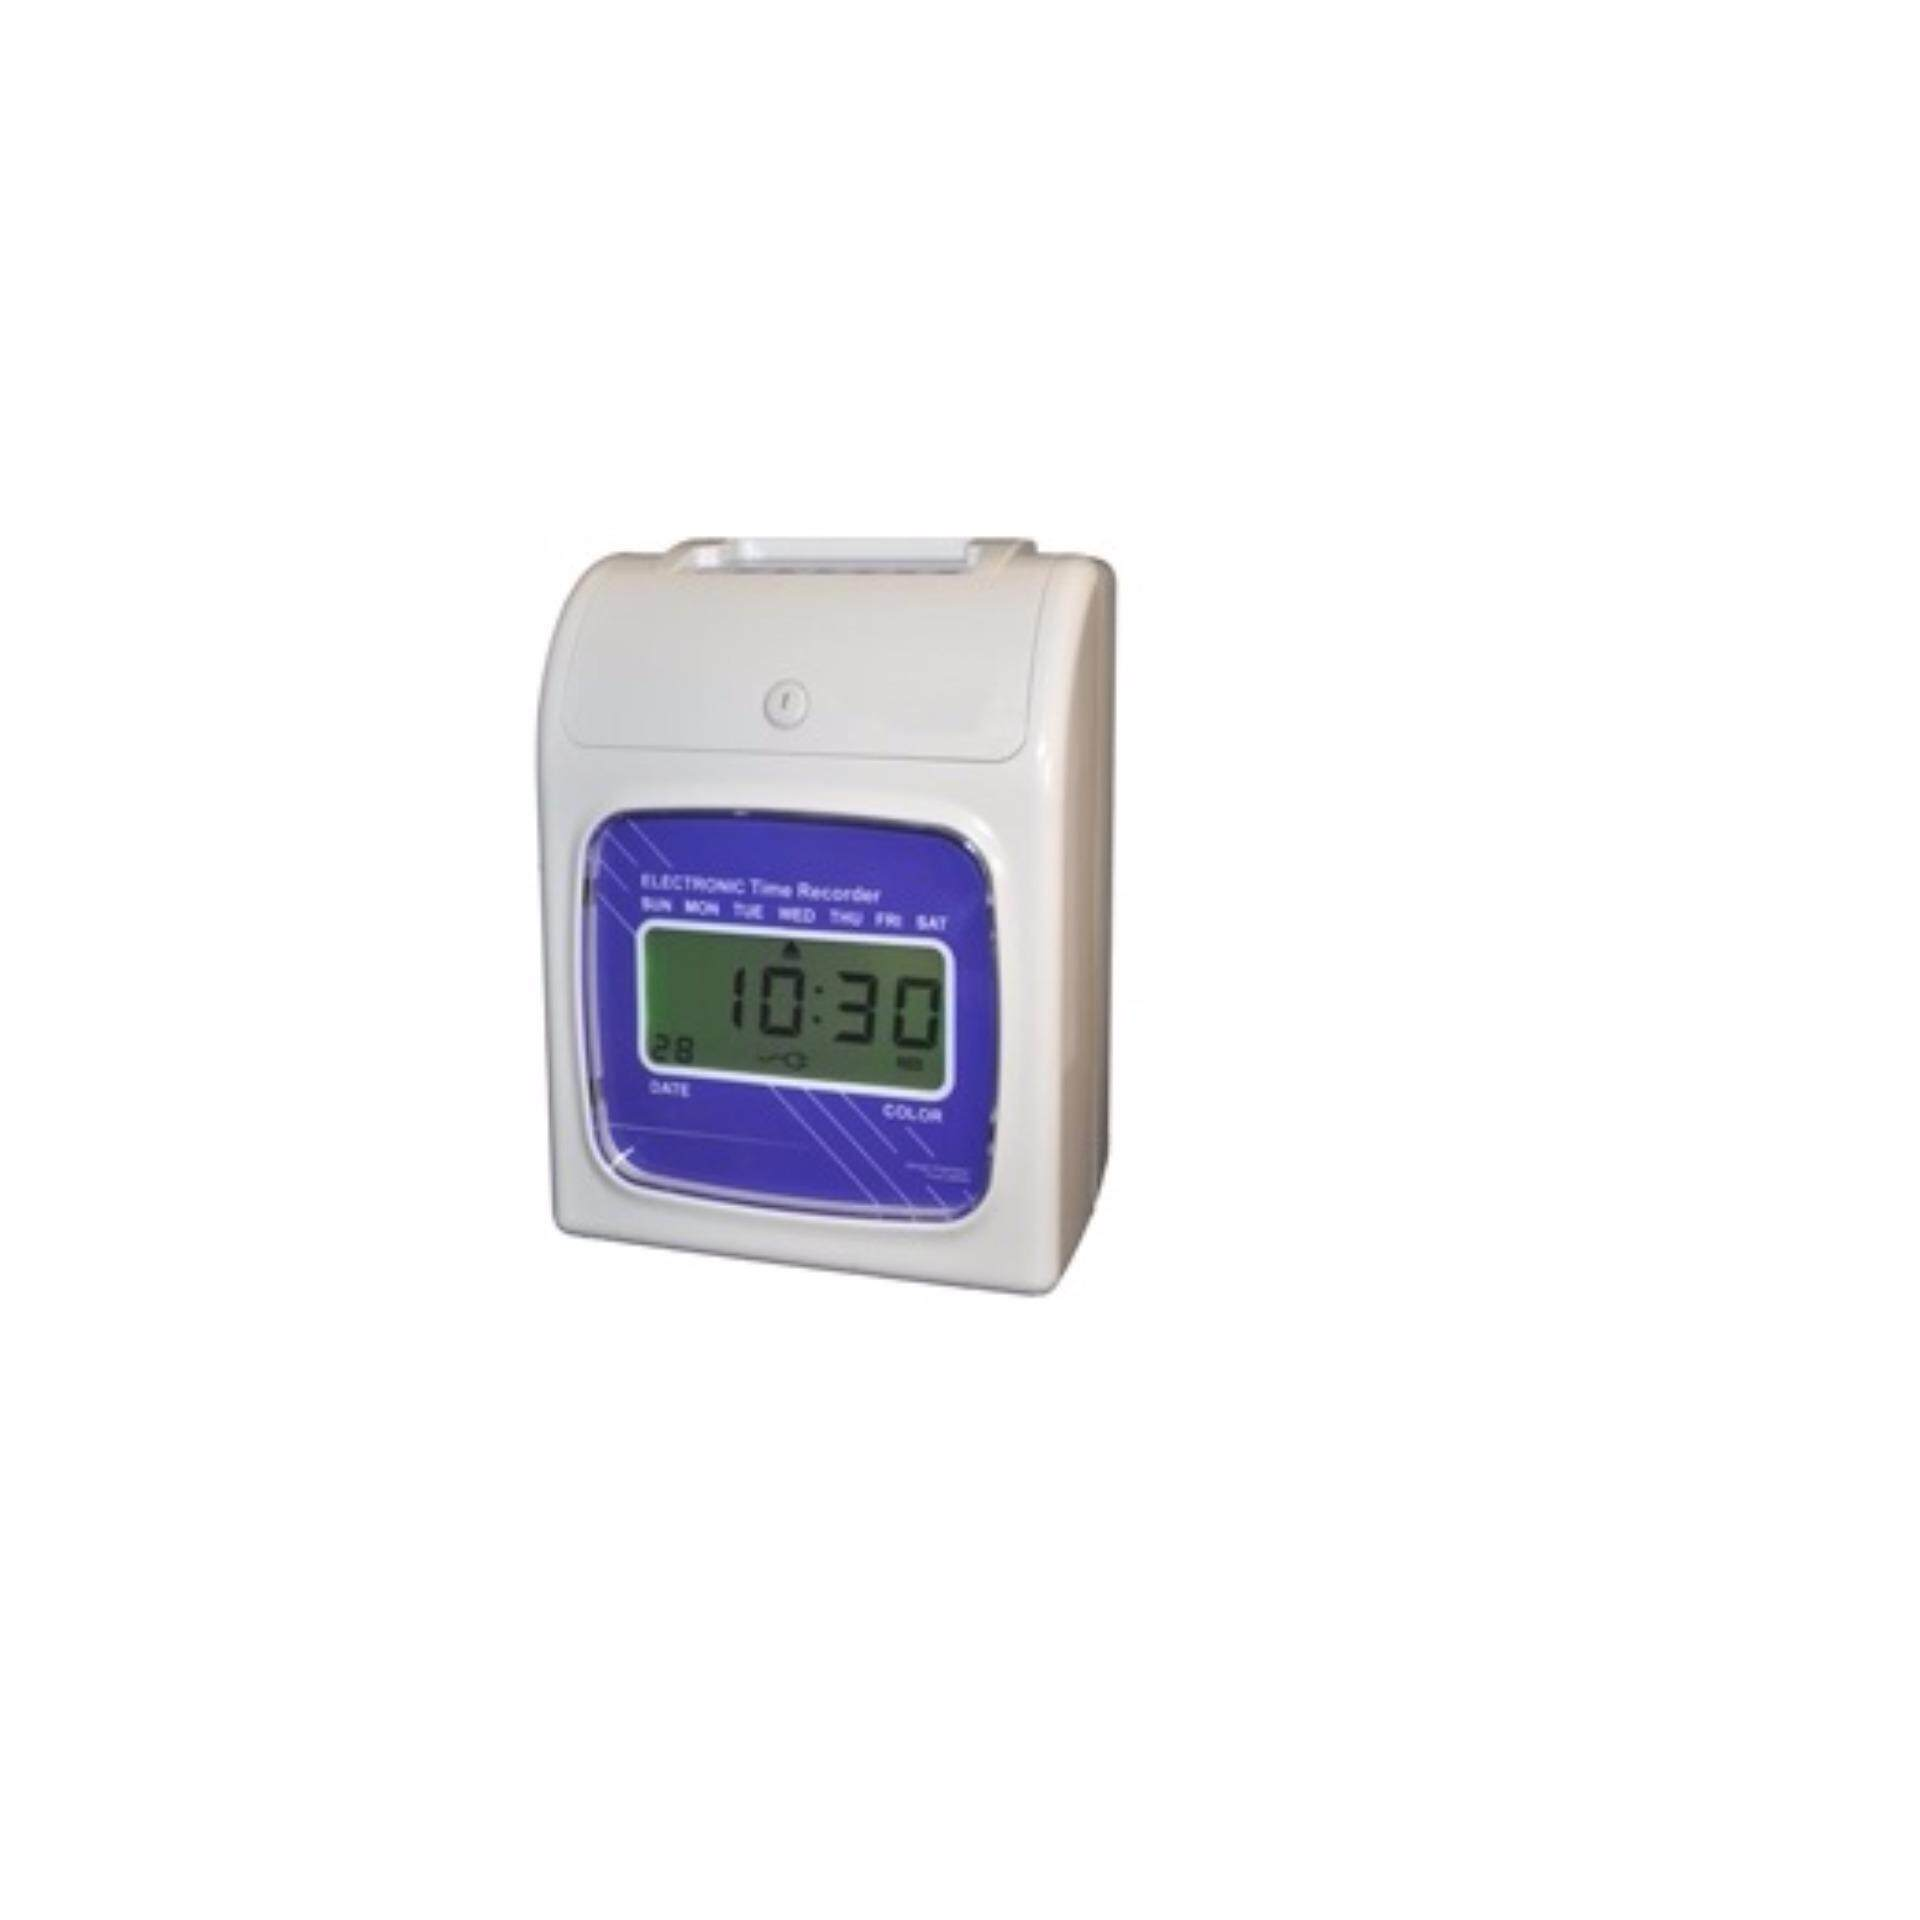 DIGITSCREEN TIME RECORDER PUNCH CARD+ 5 YEARS WARRANTY